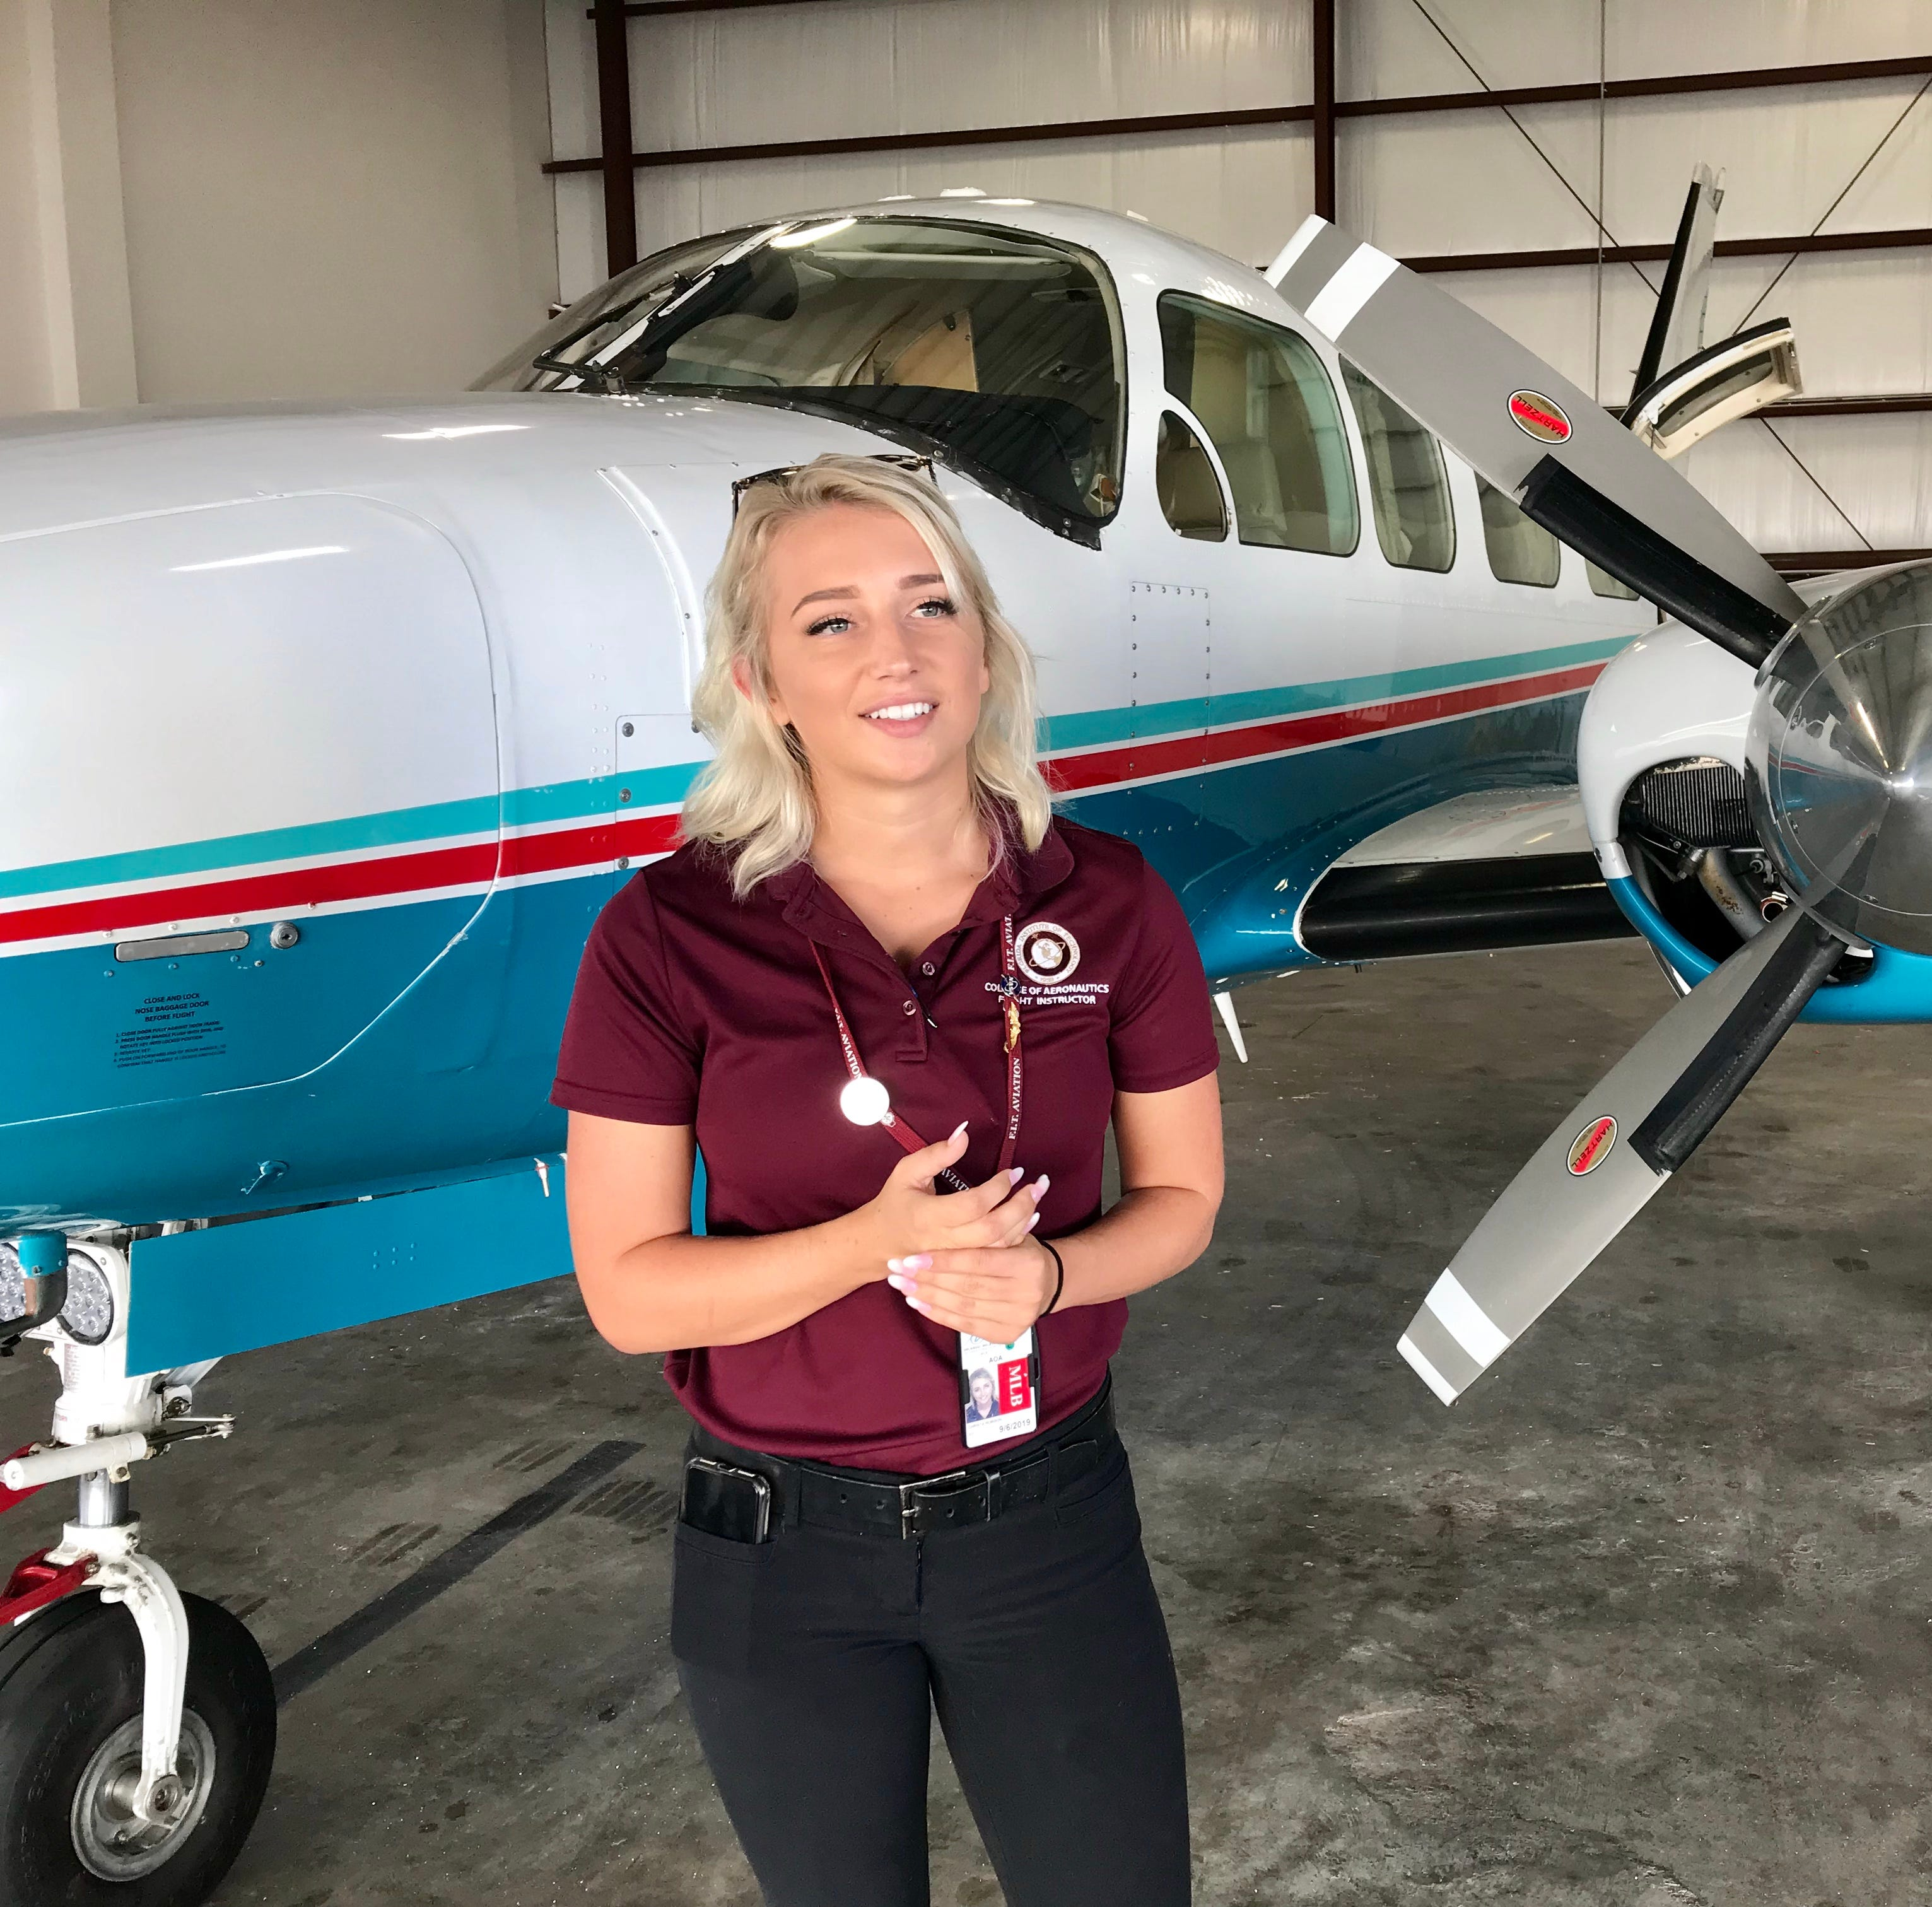 Florida Tech flight instructor to fly 1,300 pounds of supplies into hurricane damage zone